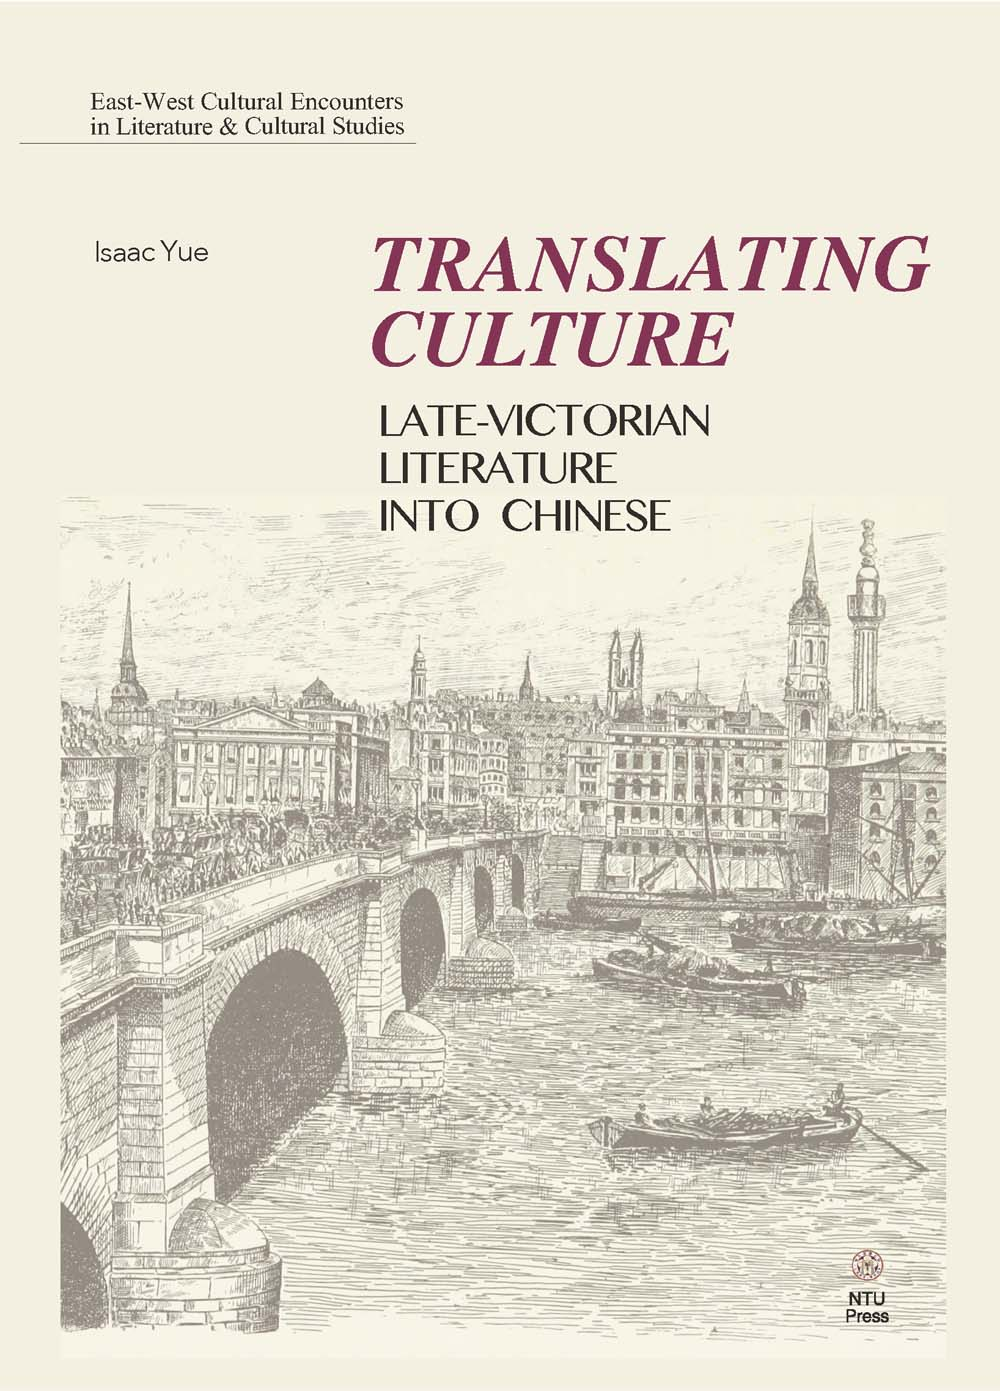 Translating Culture: Late-Victorian Literature into Chinese